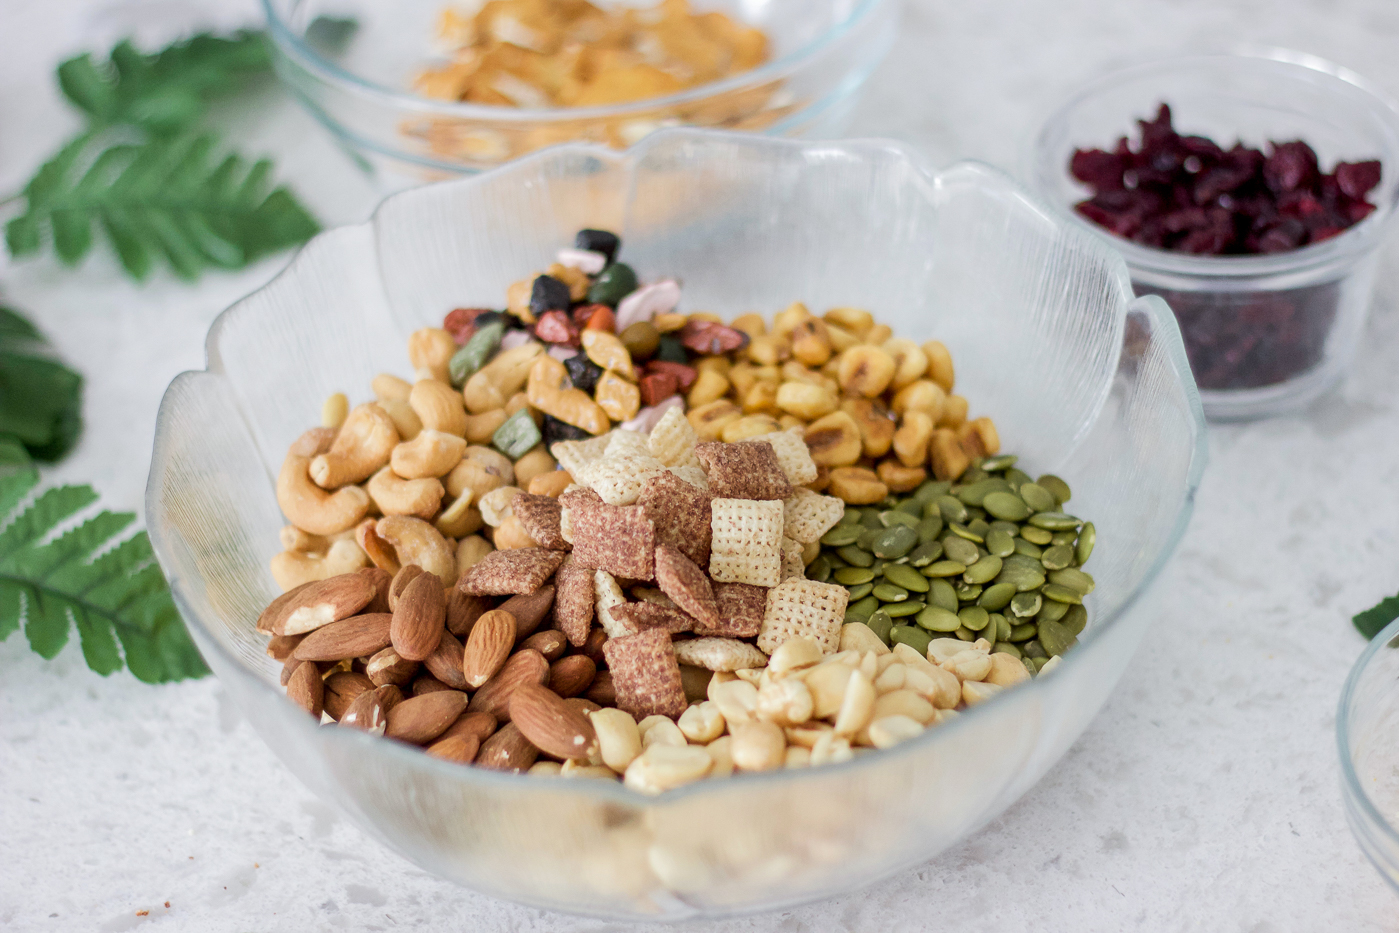 The ingredients for a simple homemade trail mix recipe